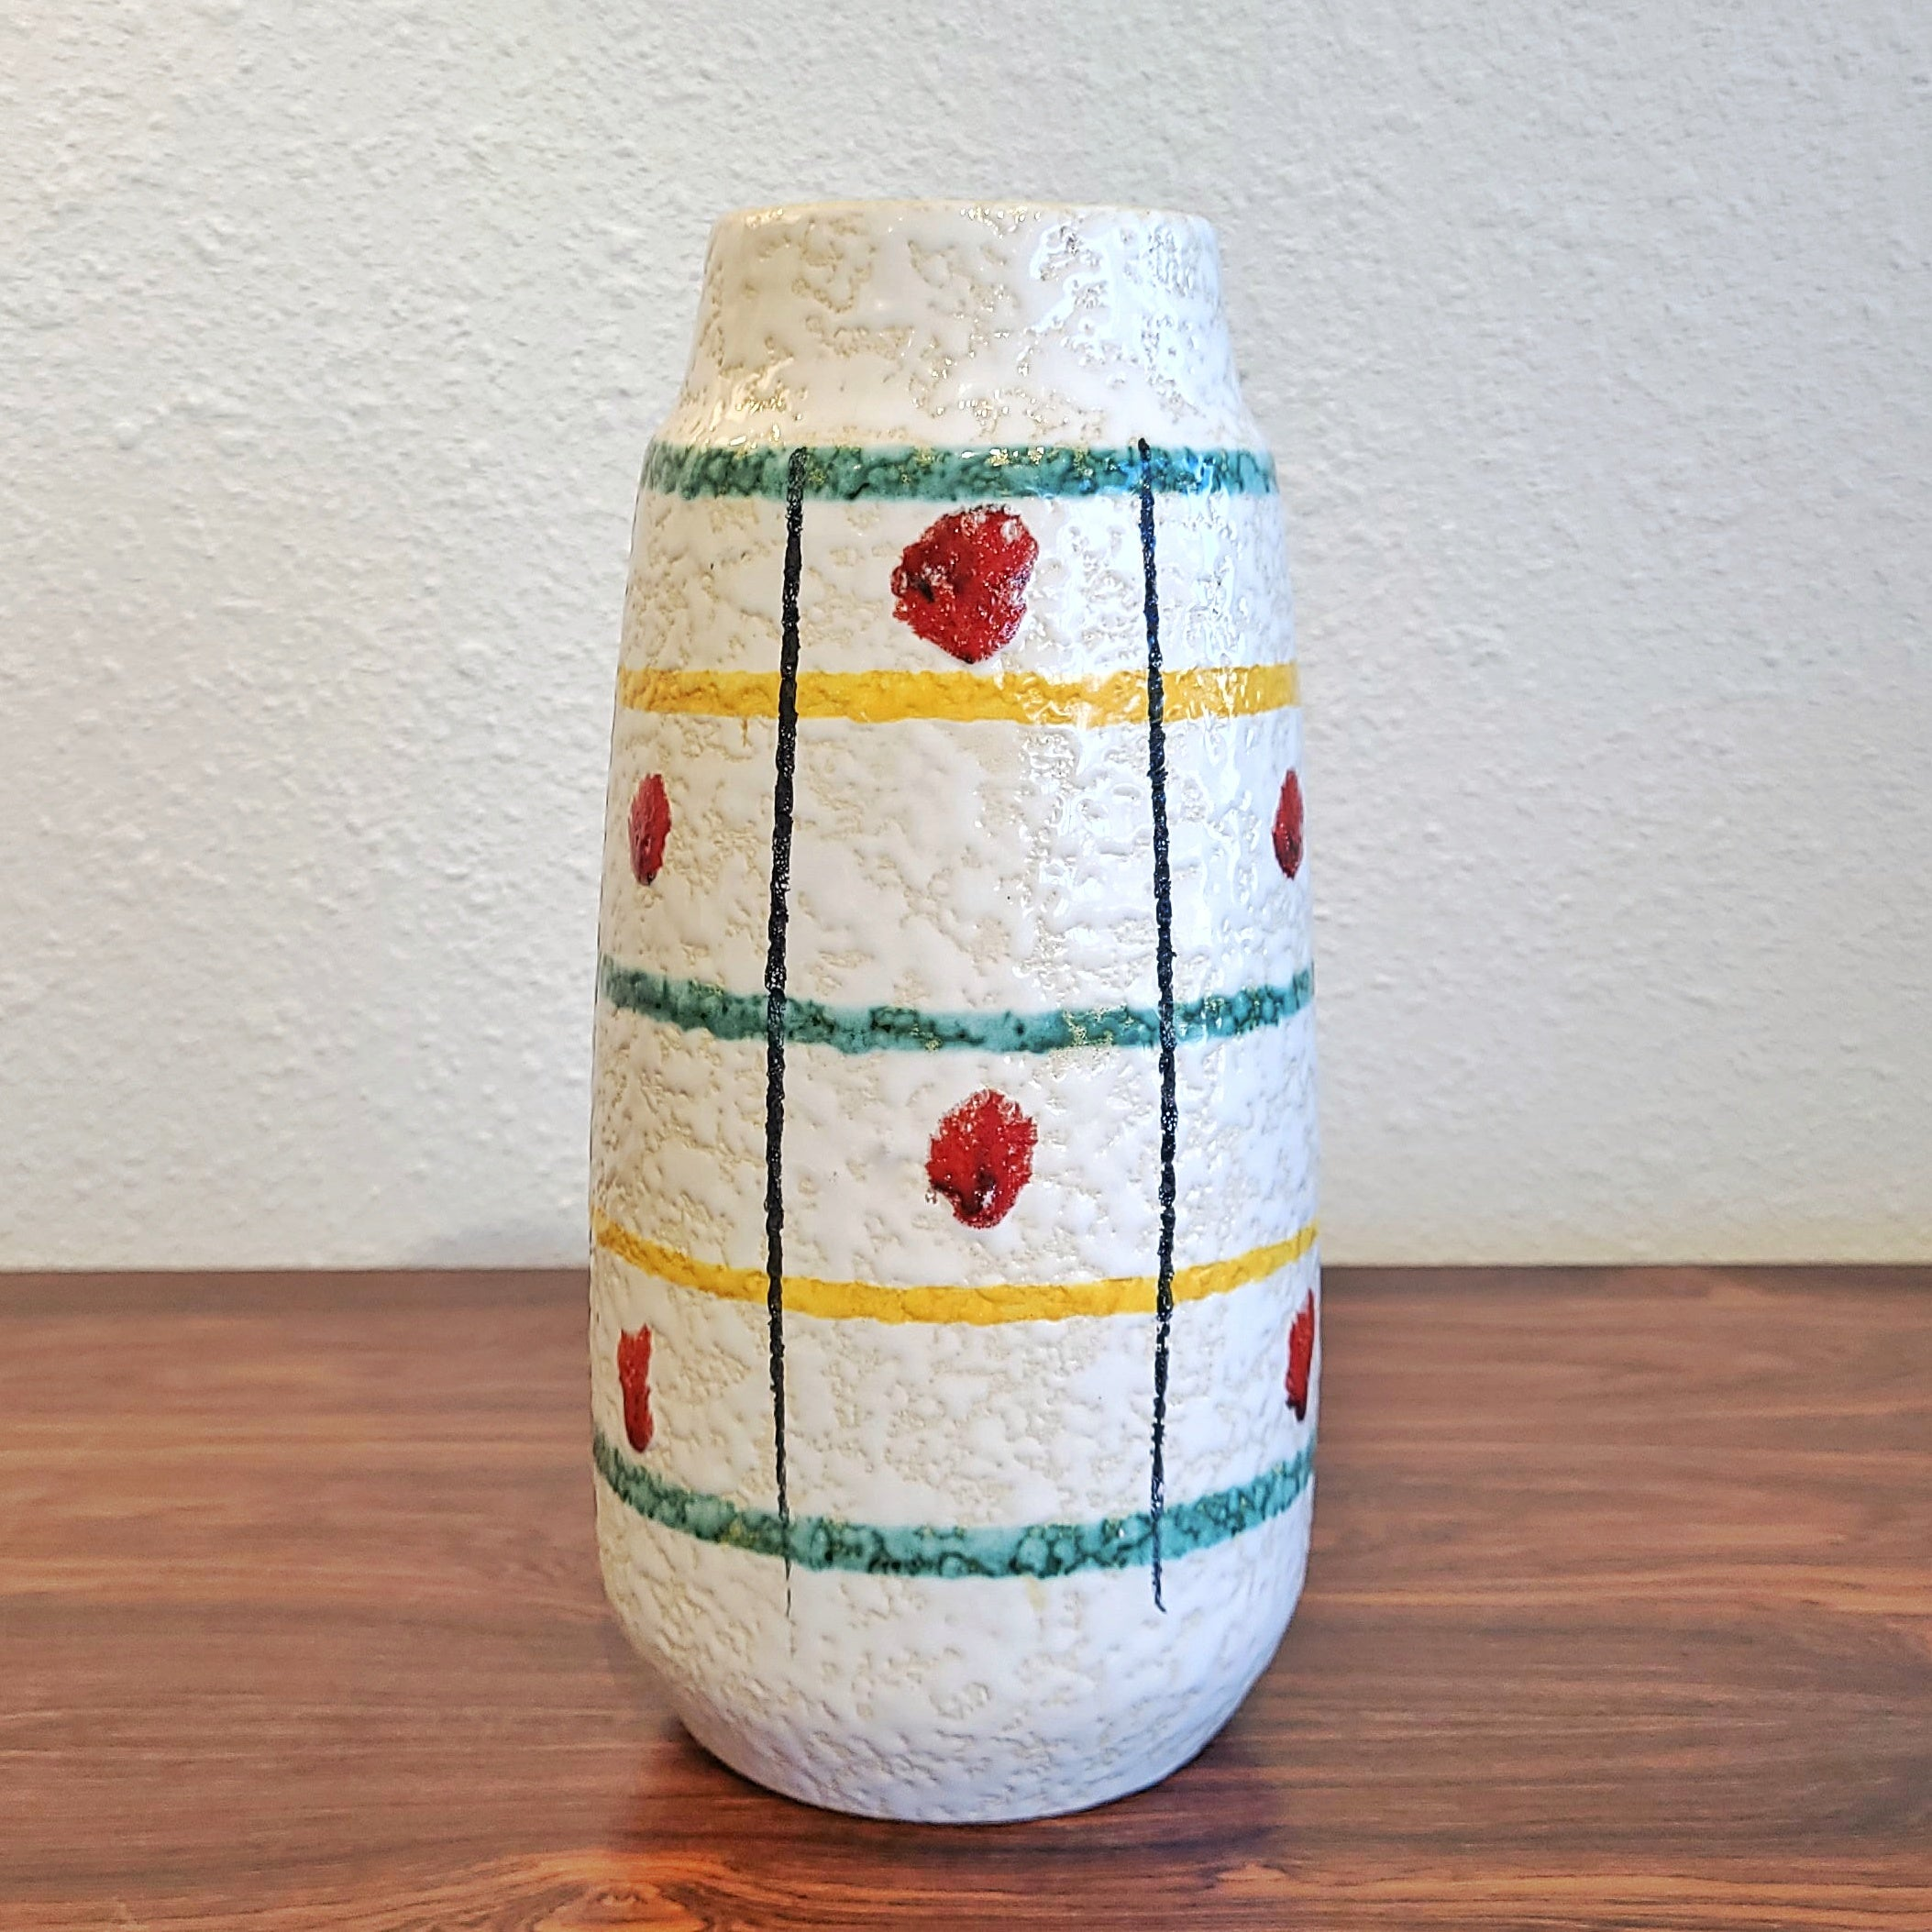 EARLY 60s SCHEURICH KERAMIK VASE Nr. 203/26